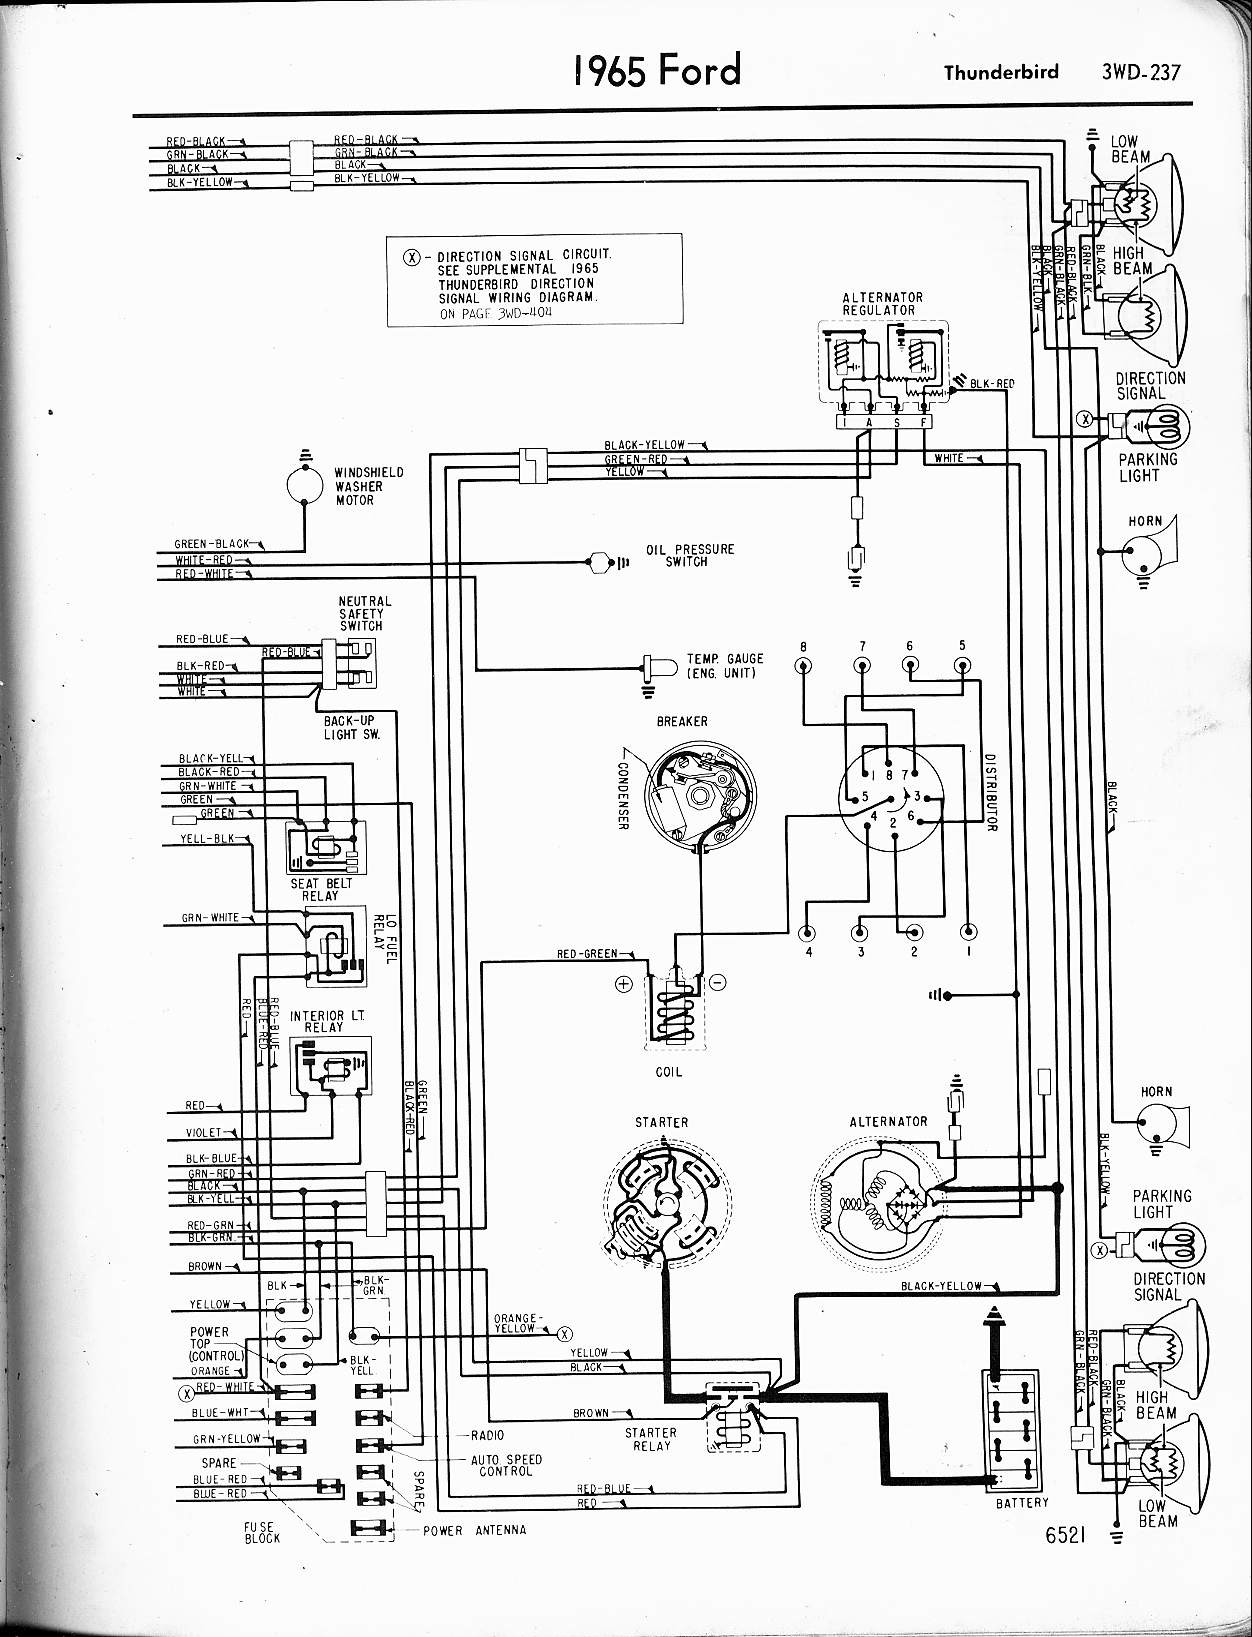 ford transit engine diagram ford econoline wiring diagram also 1966 ford  thunderbird wiring of ford transit